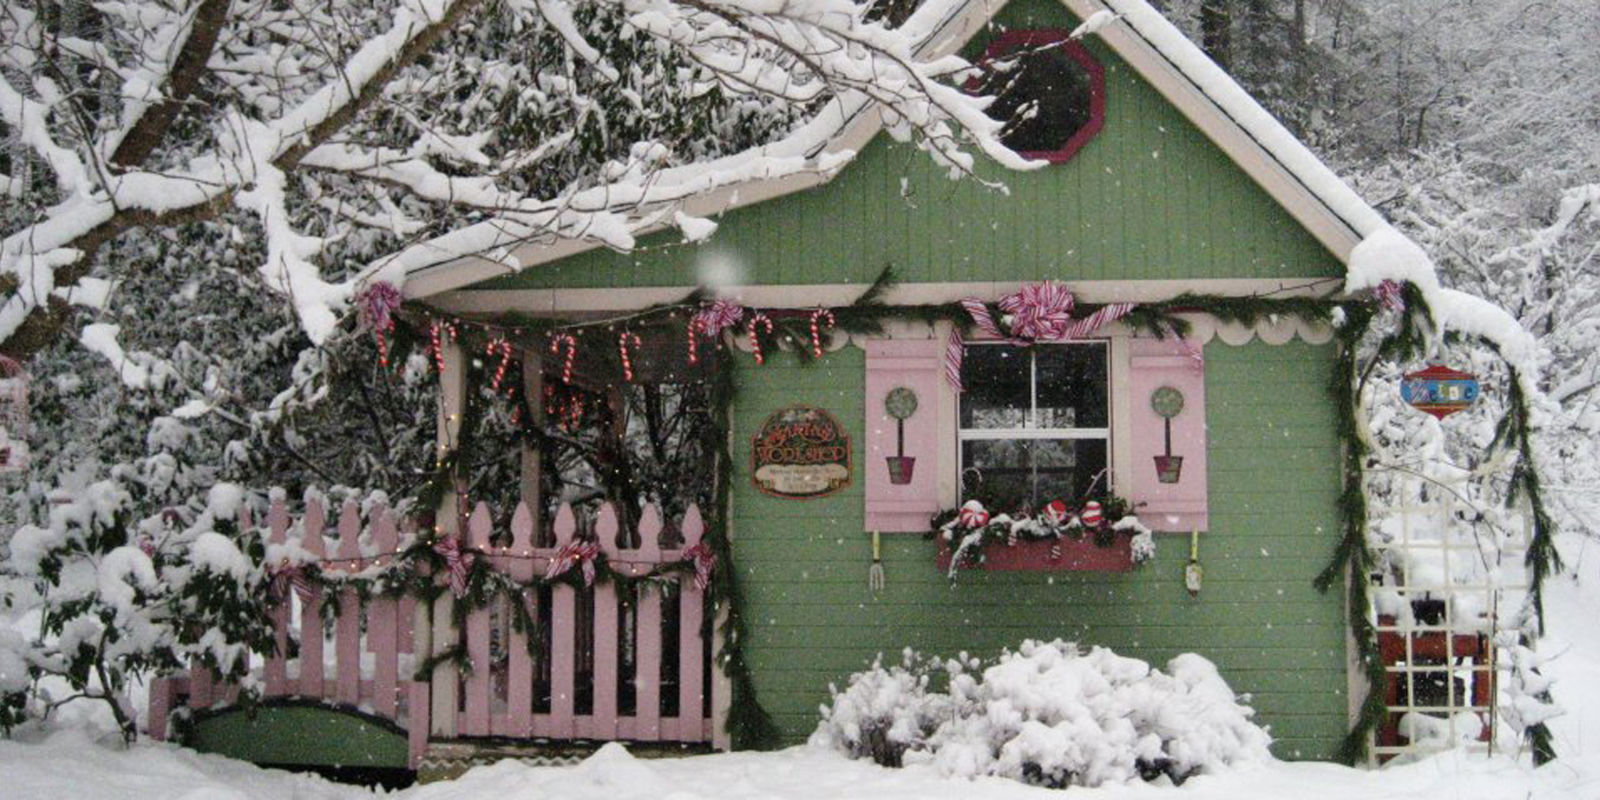 Christmas Homes 16 small space christmas decorating ideas - tiny house christmas